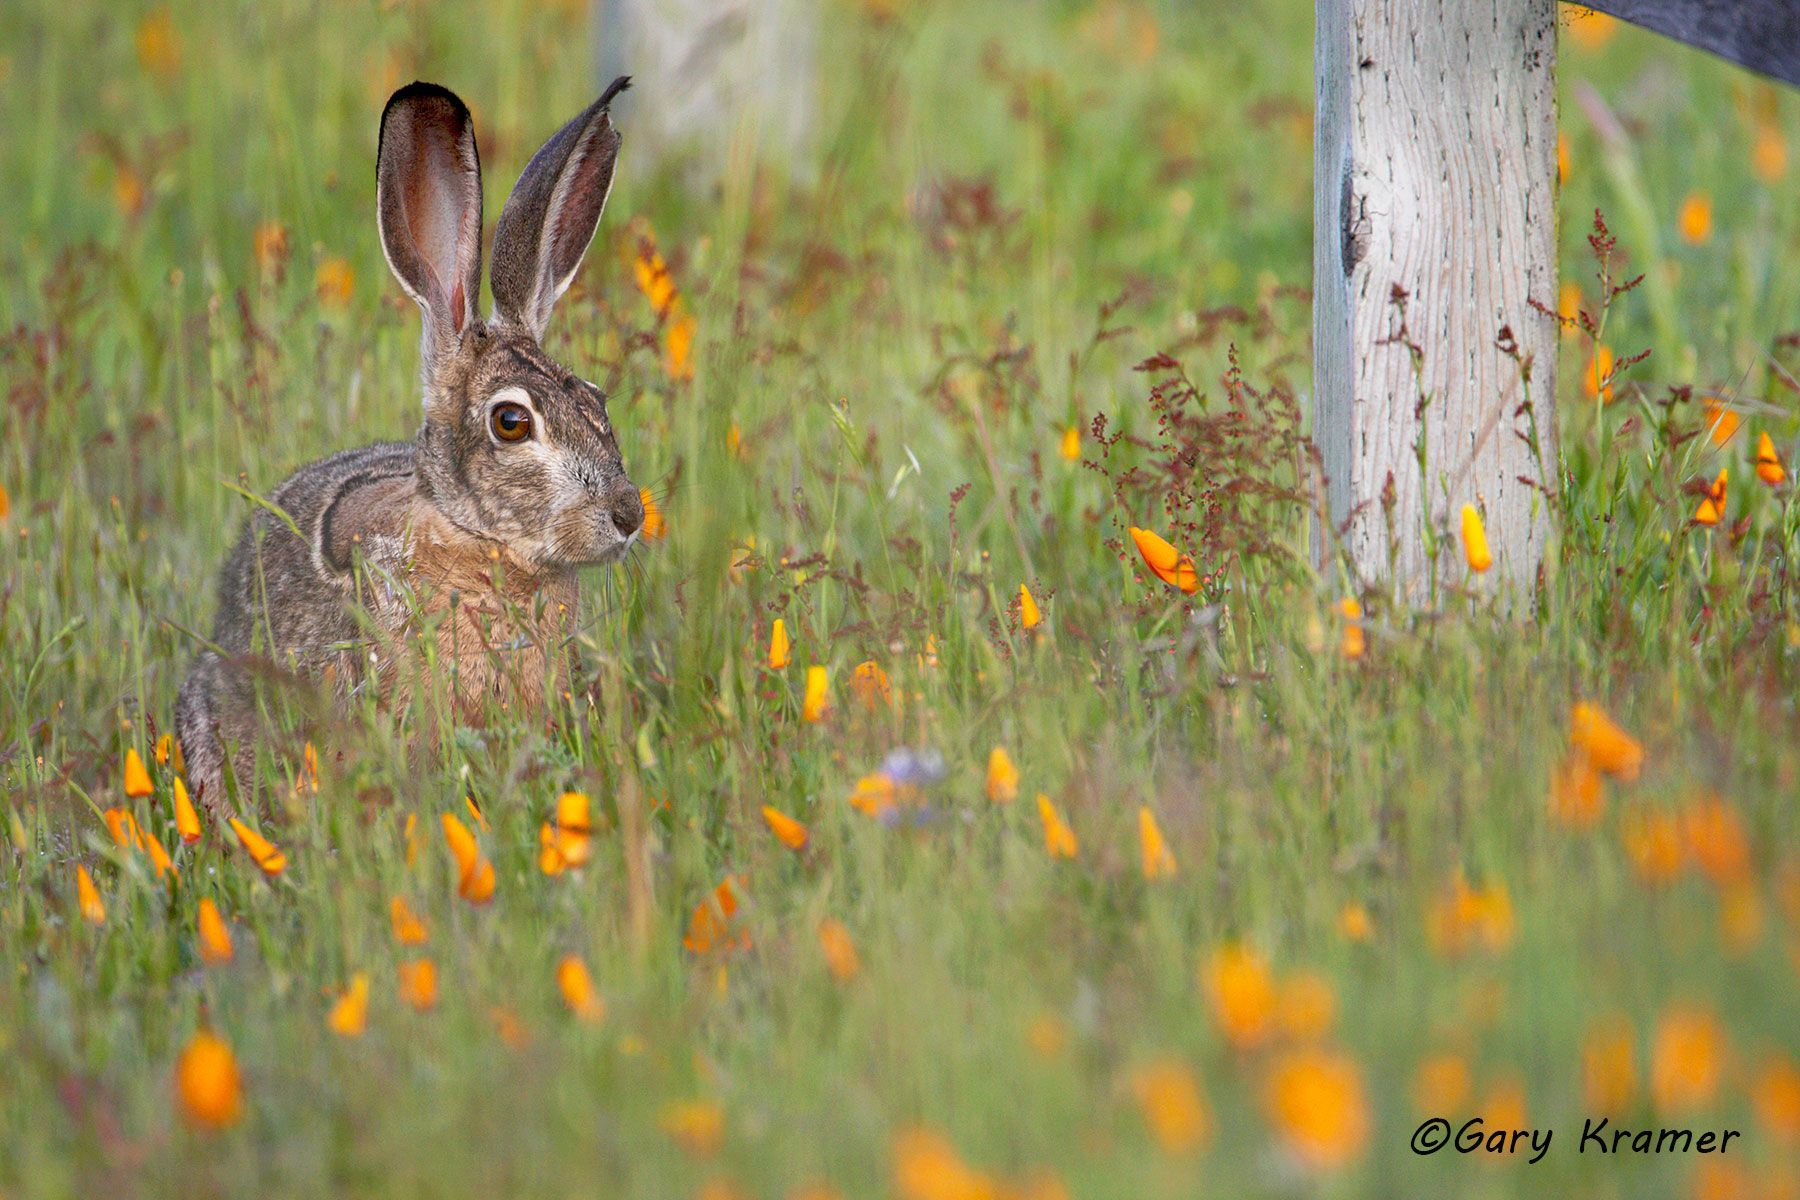 Blacktail Jackrabbit (Lepus californicus) - NMRBt#238d